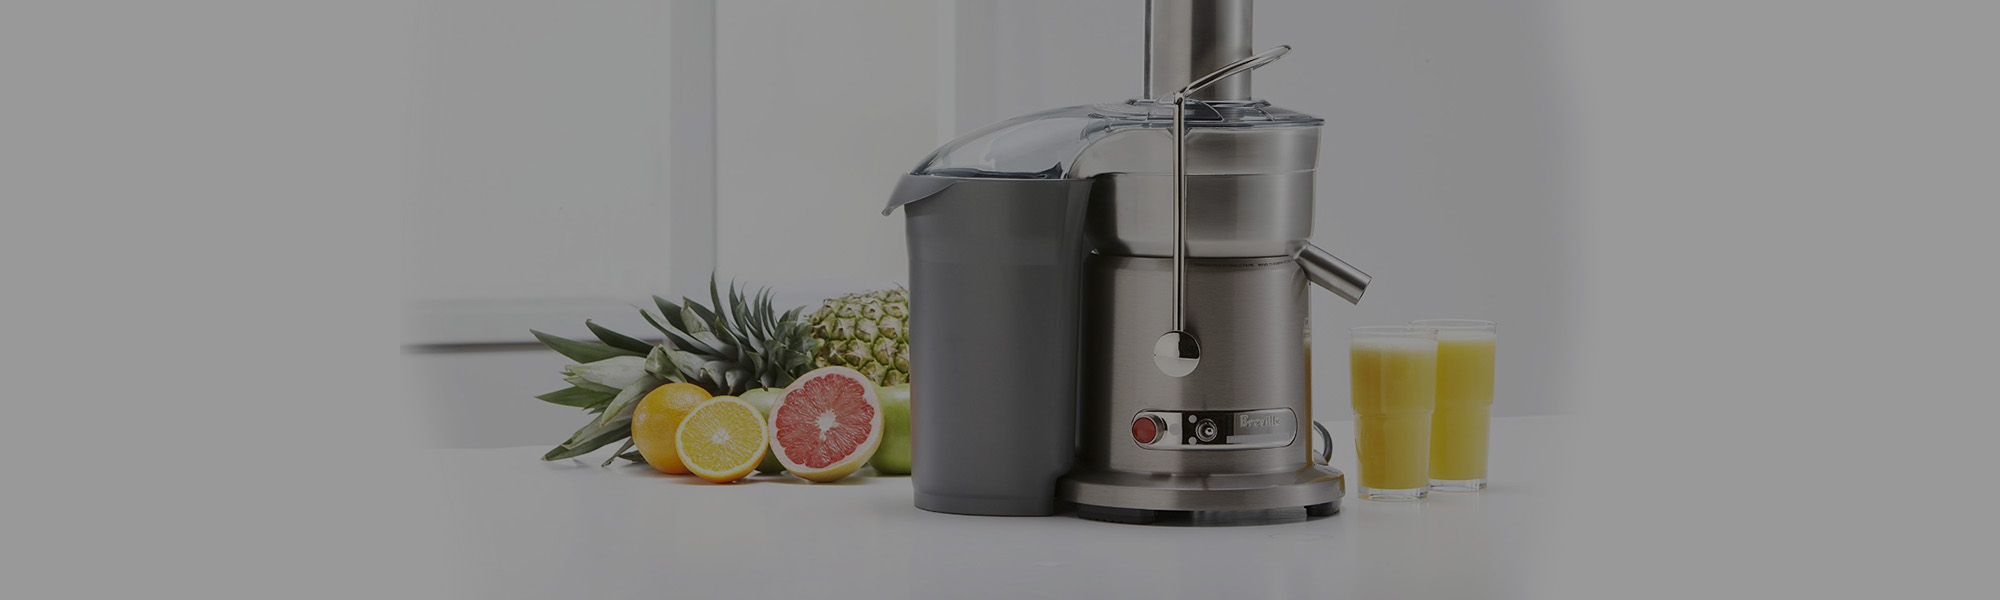 Breville RM-BJE510XL<br>Remanufactured<br>900-Watt Juice Fountain